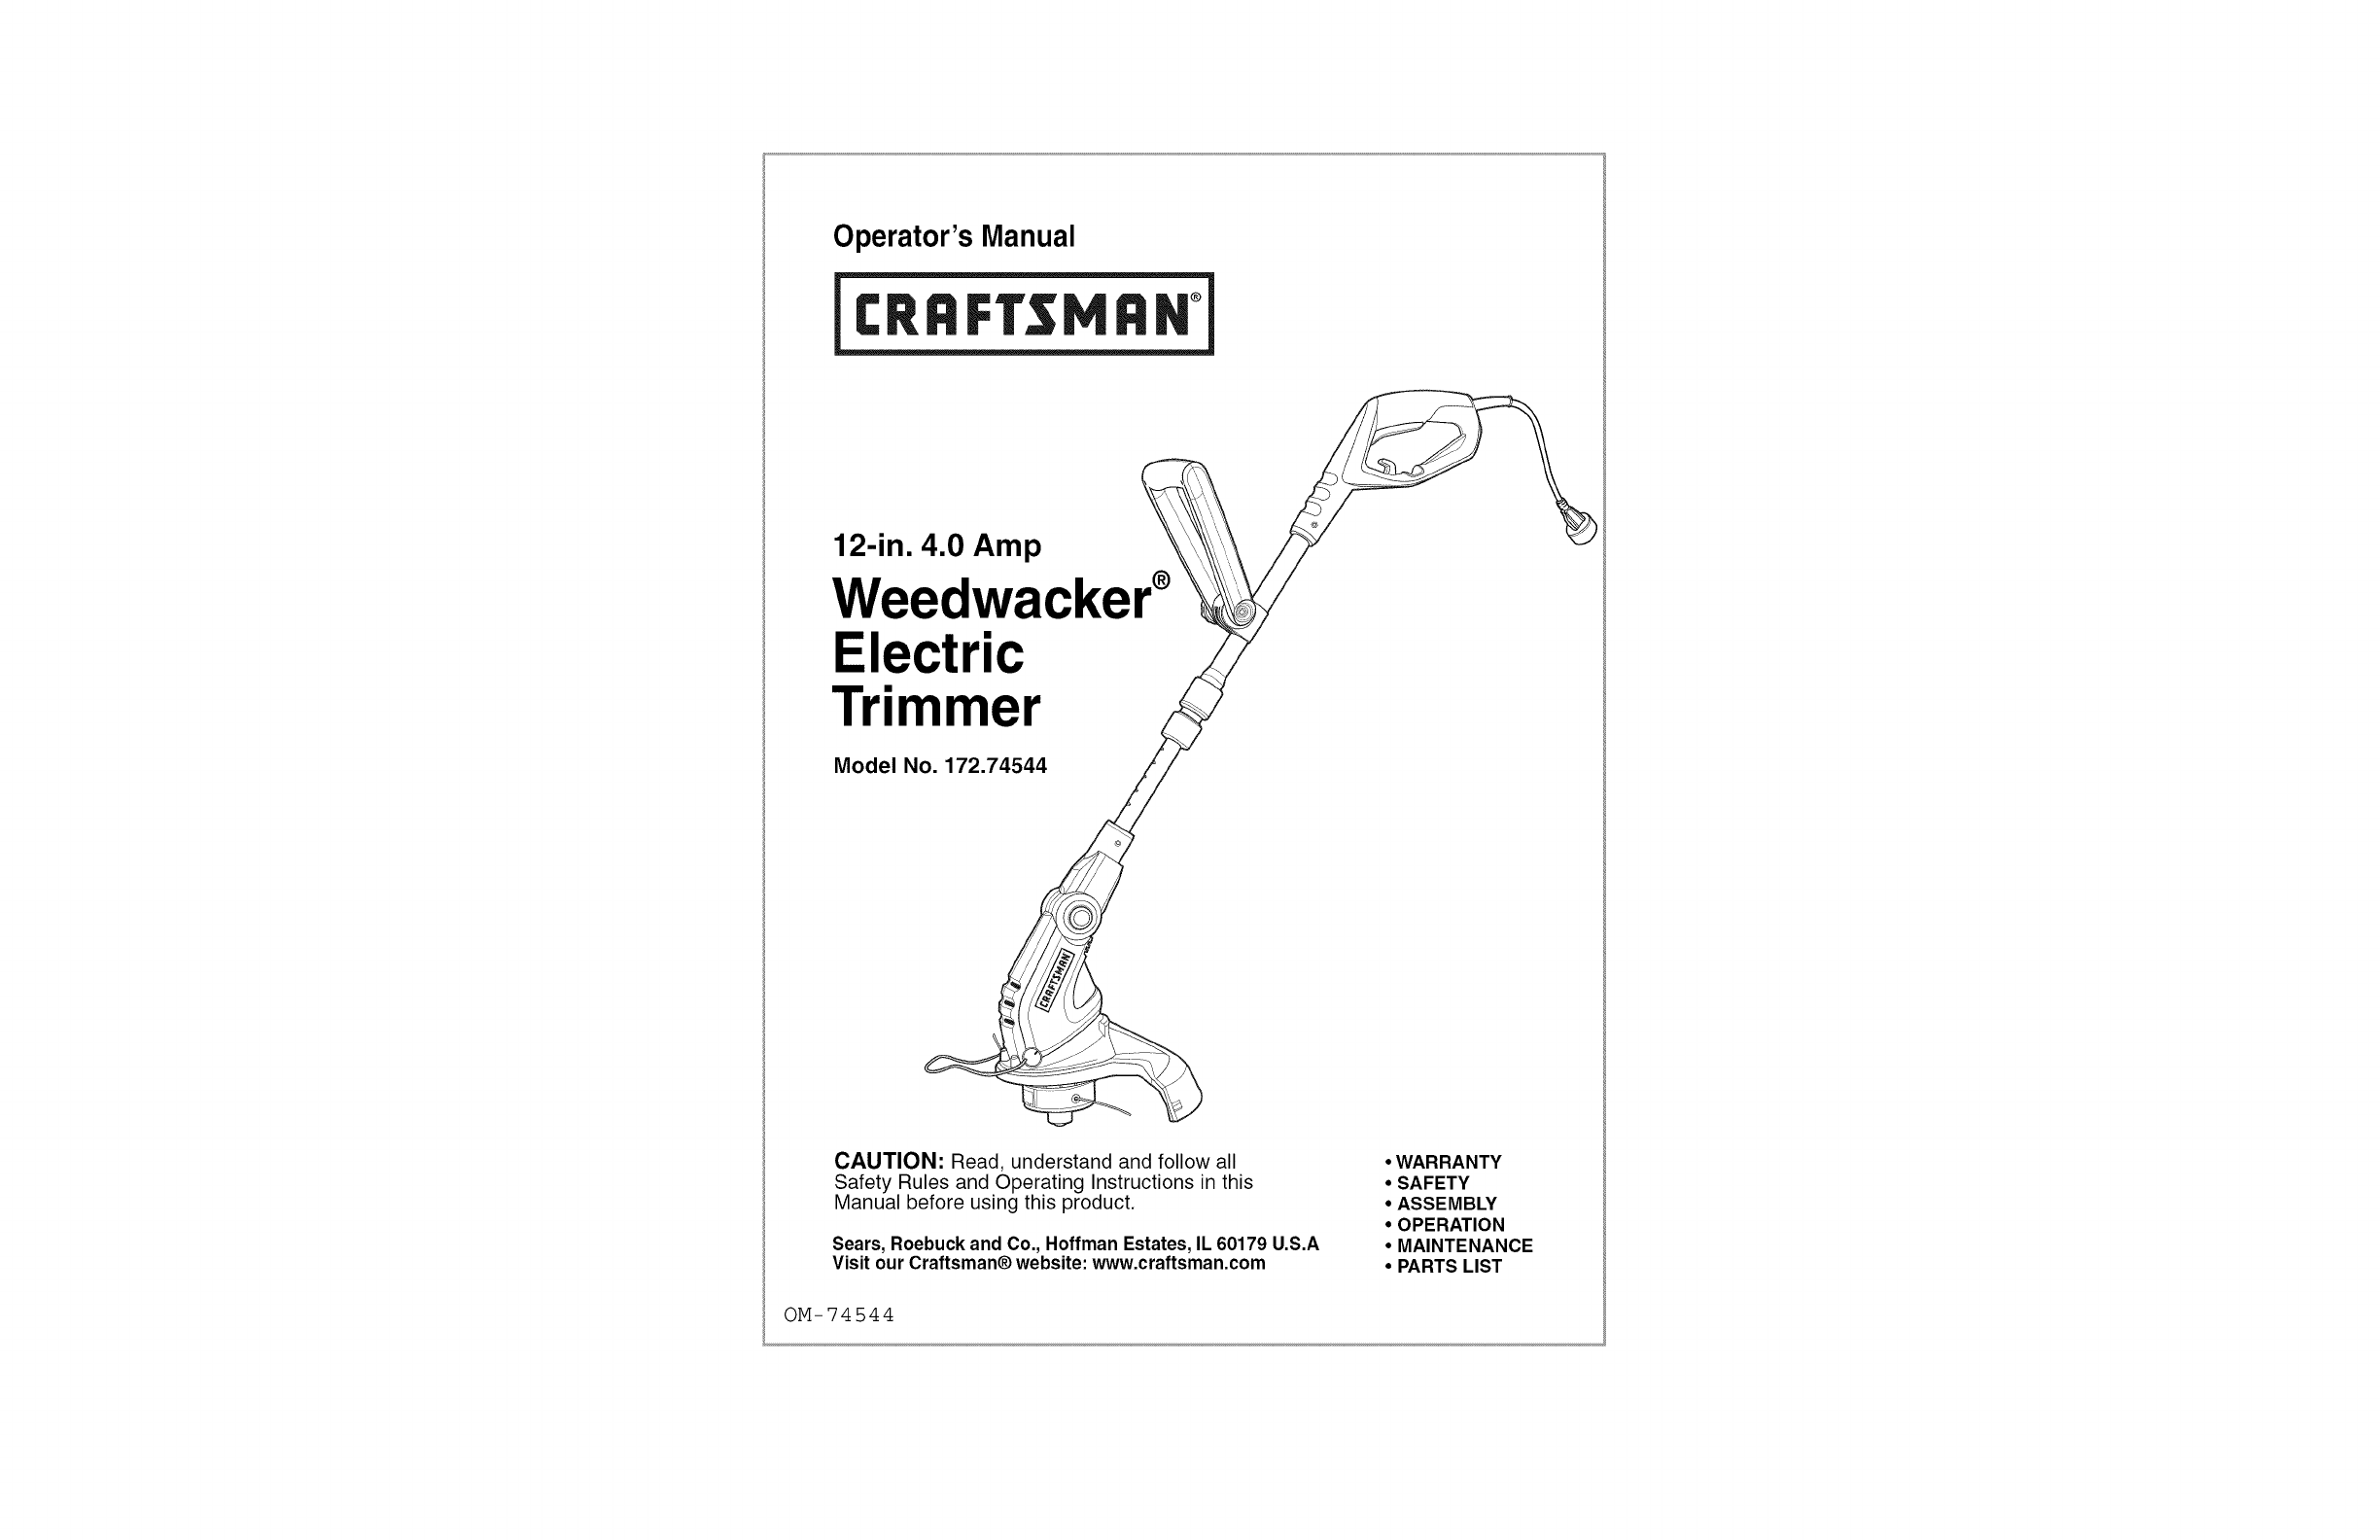 craftsman trimmer 172 74544 user guide manualsonline com rh lawnandgarden manualsonline com Craftsman Gas Trimmer craftsman trimmer owners manual